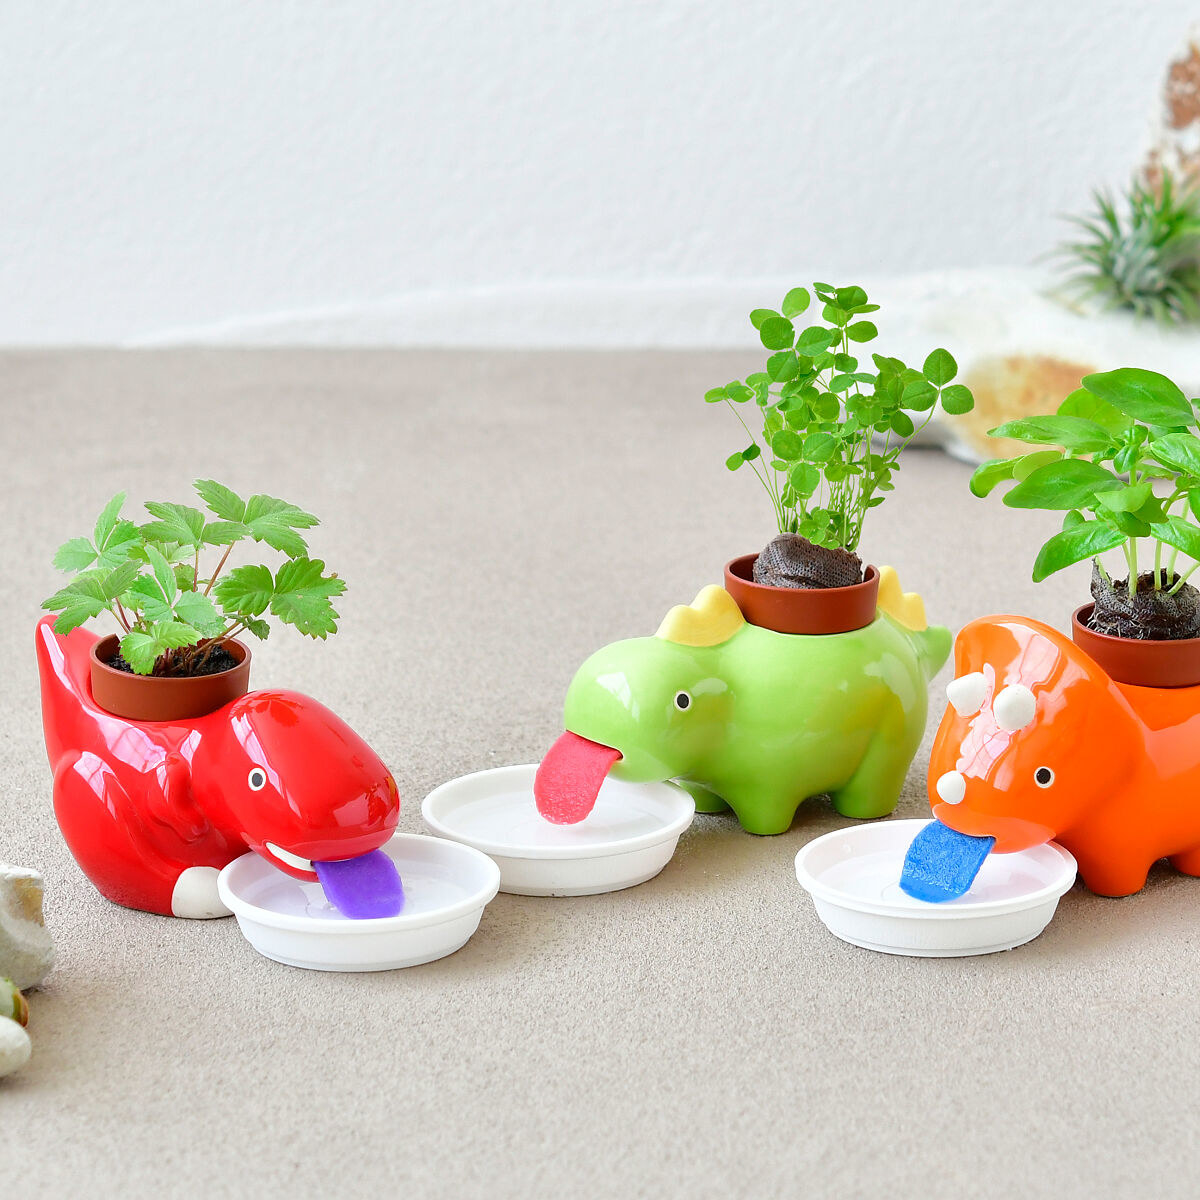 The mini planters in red, green, and orange dinosaur designs